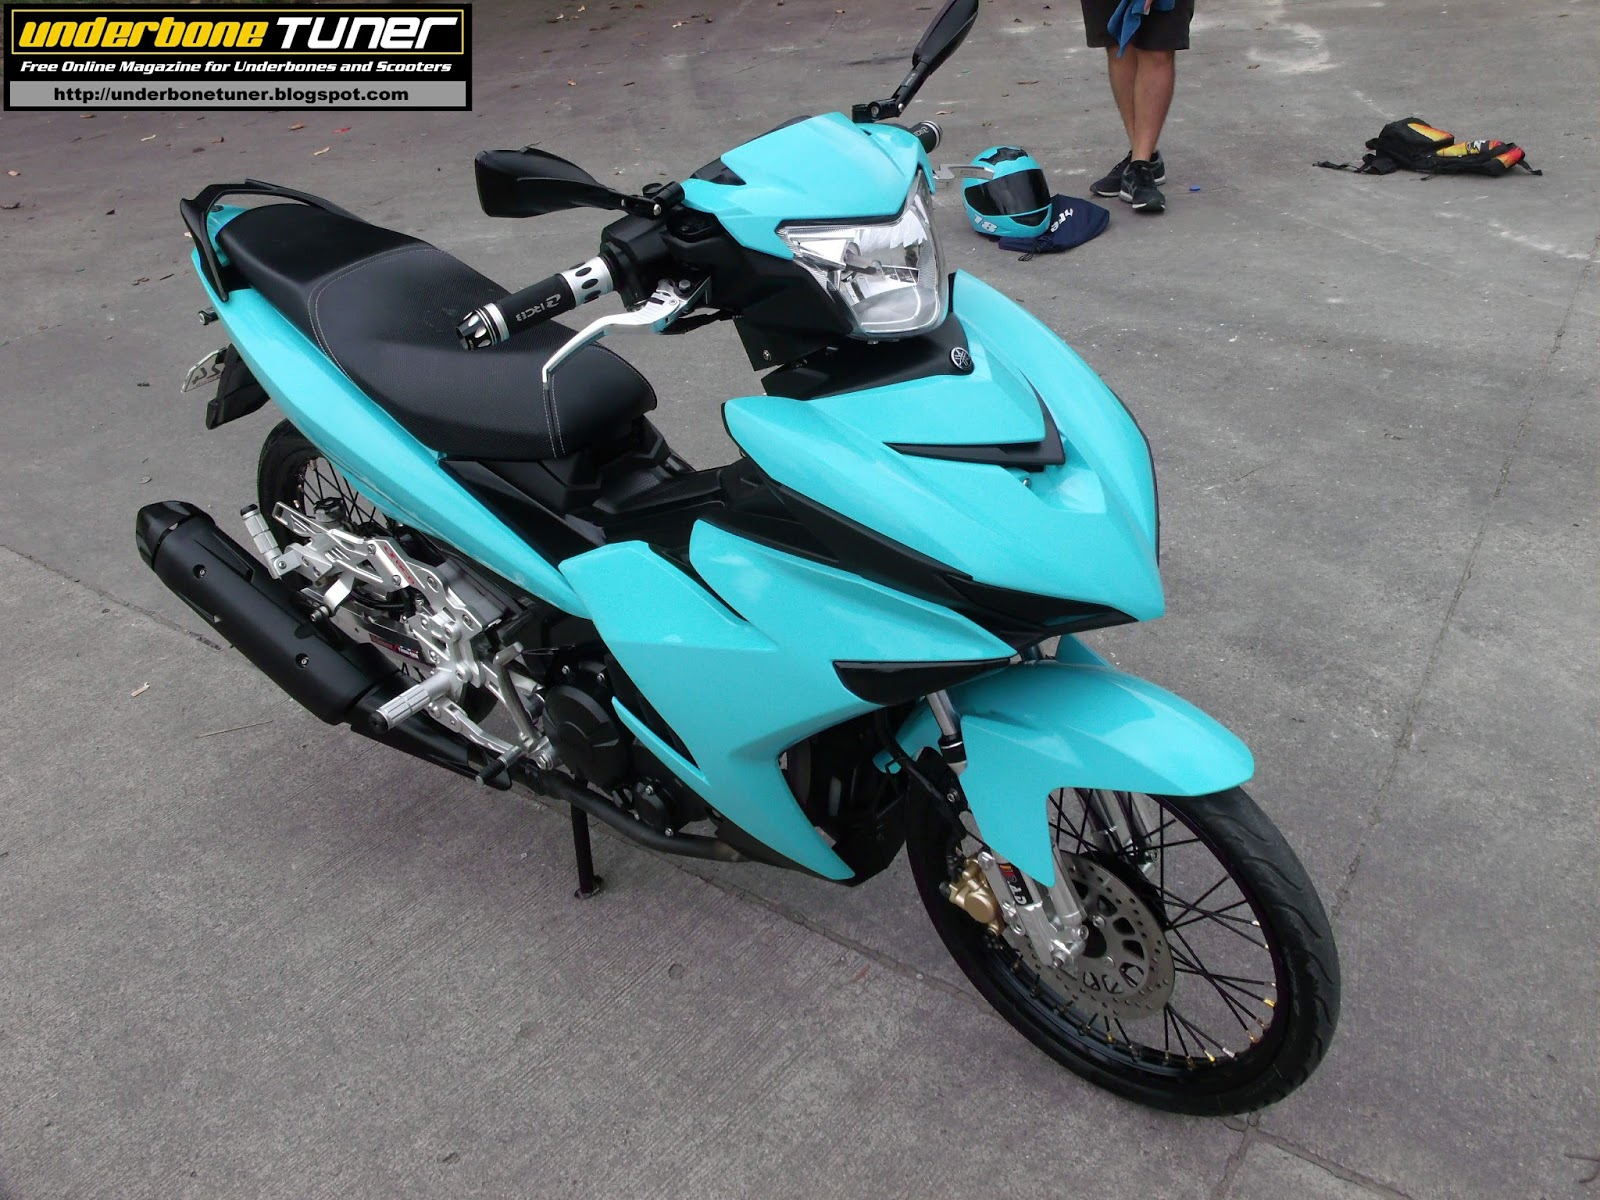 Honda Xrm Parts Parts Of Honda Xrm 110 Images Honda Xrm ...